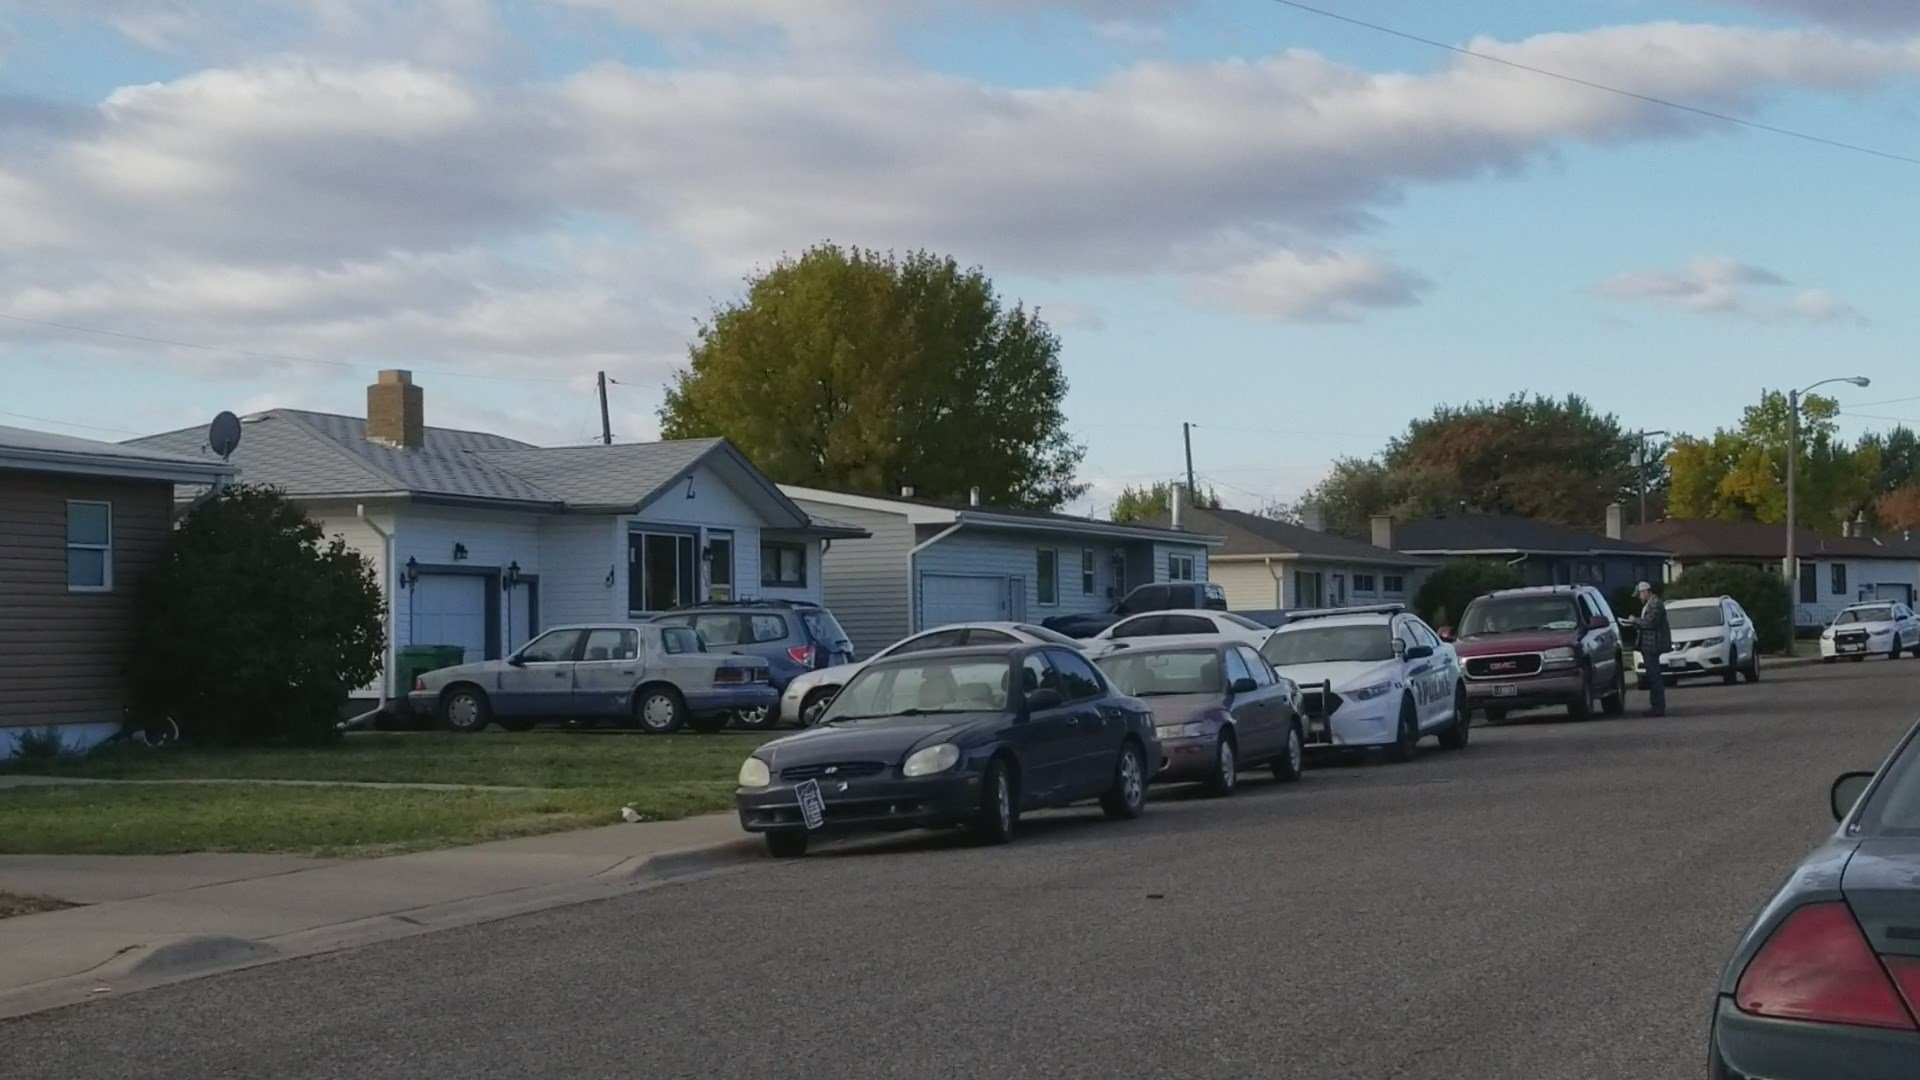 A 14-year-old girl was allegedly sexually assaulted in this Great Falls neighborhood last weekend. (MTN News)